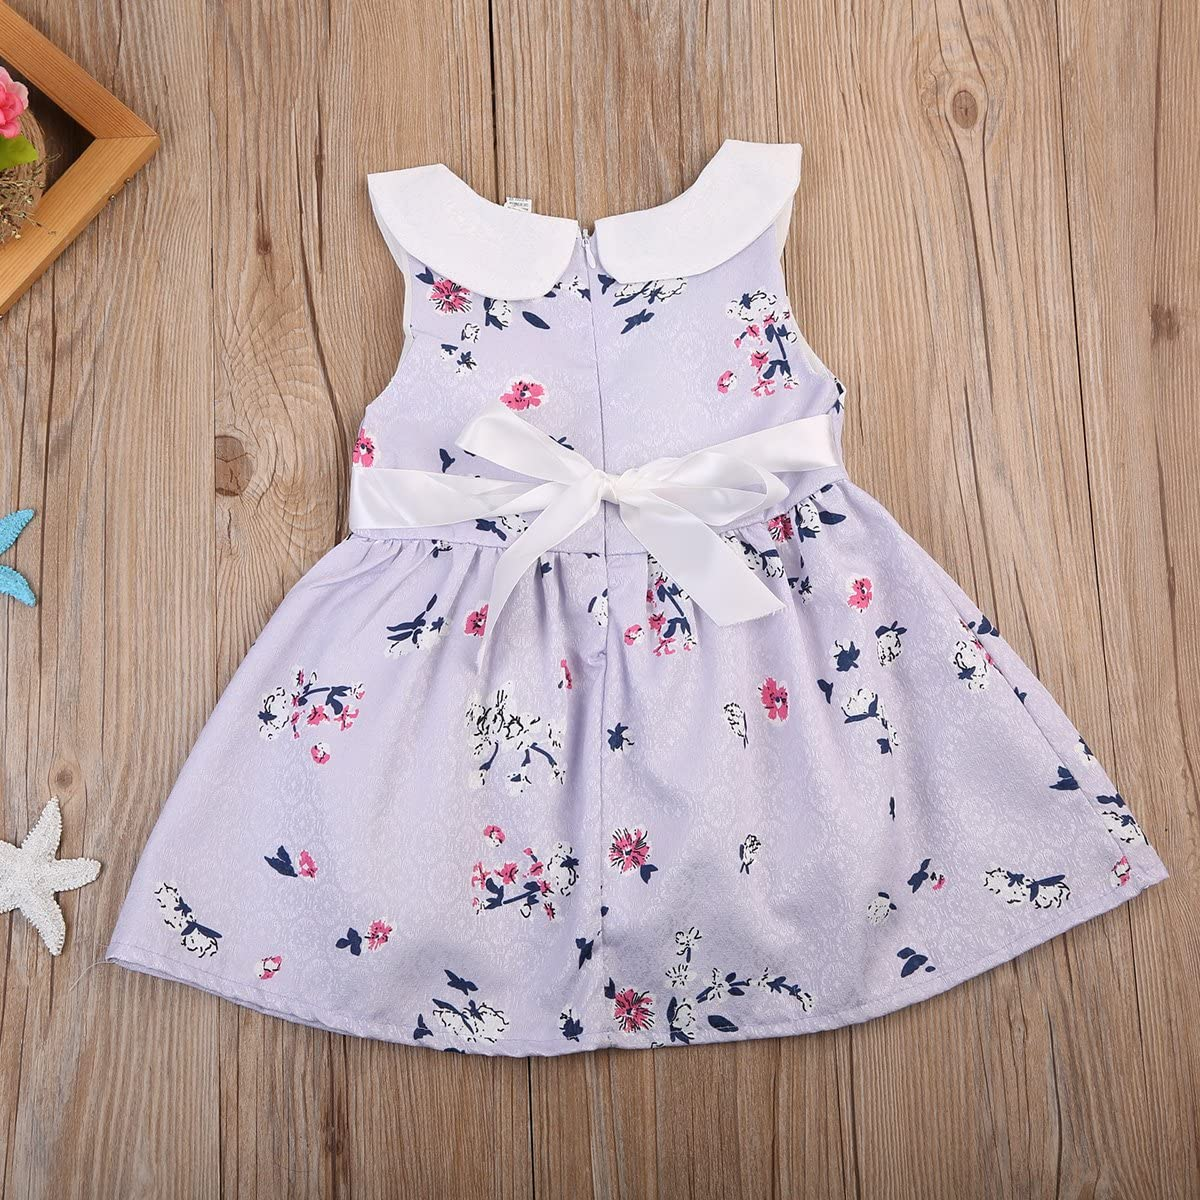 Infant Baby Girl Summer Floral Princess Tutu Dress Collared Sleeveless Sundress